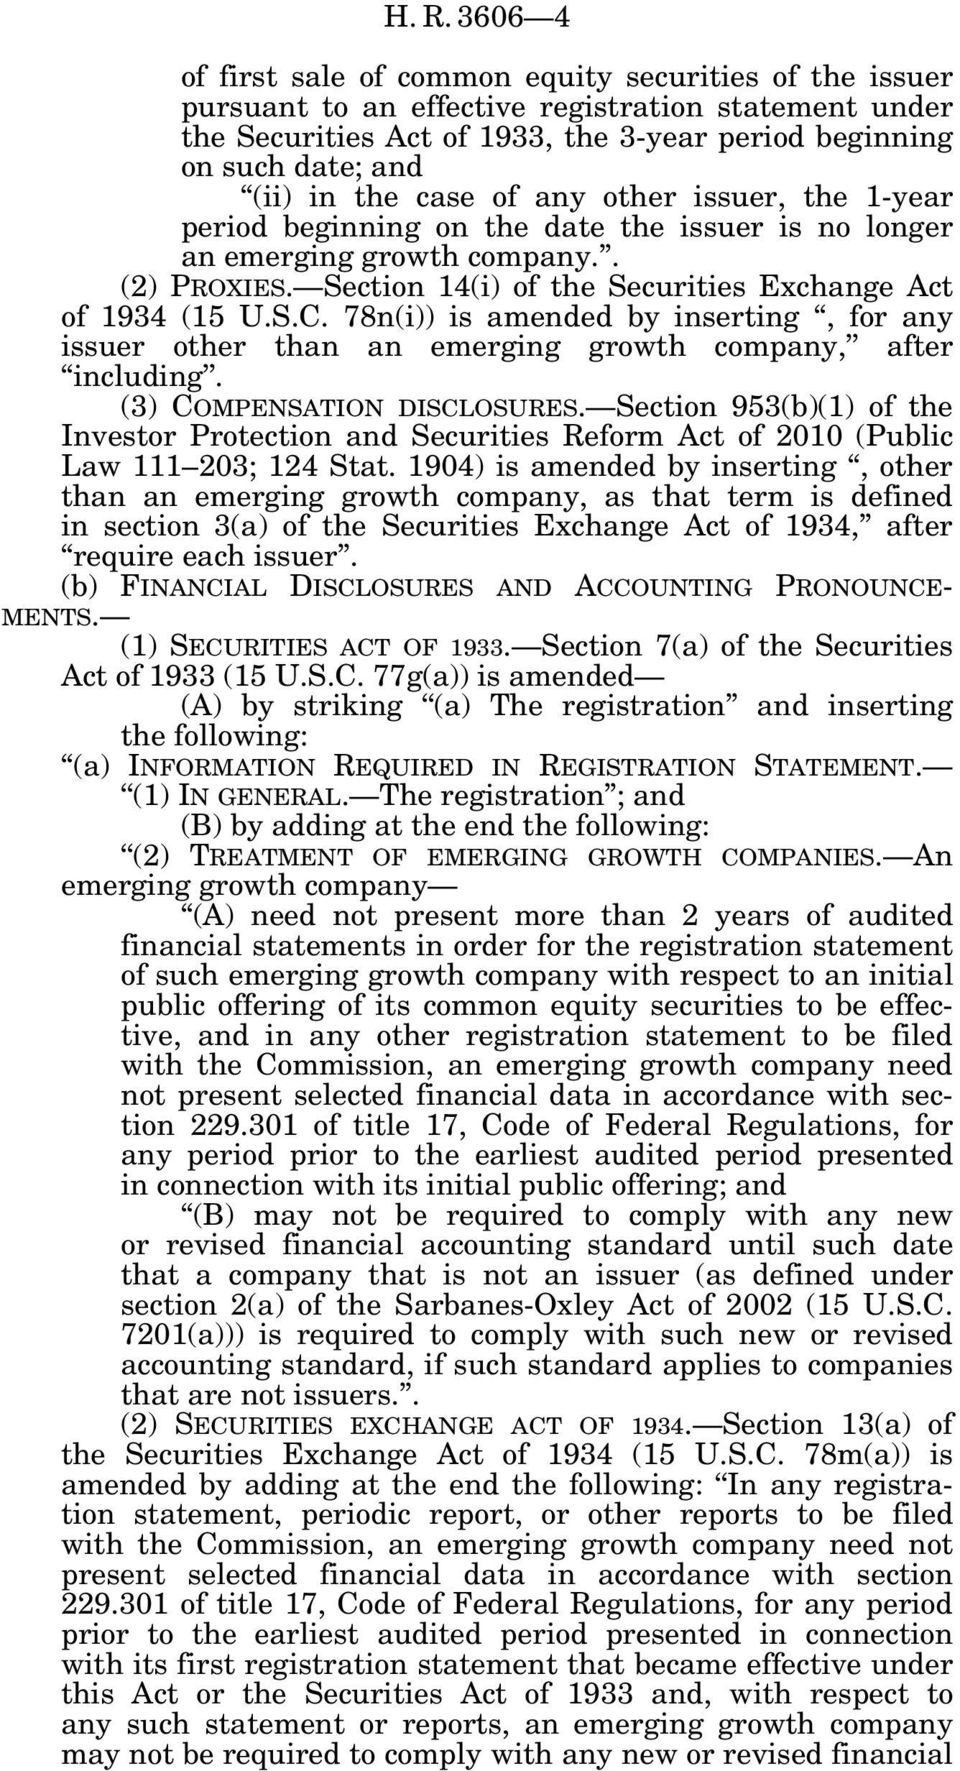 Section 14(i) of the Securities Exchange Act of 1934 (15 U.S.C. 78n(i)) is amended by inserting, for any issuer other than an emerging growth company, after including. (3) COMPENSATION DISCLOSURES.